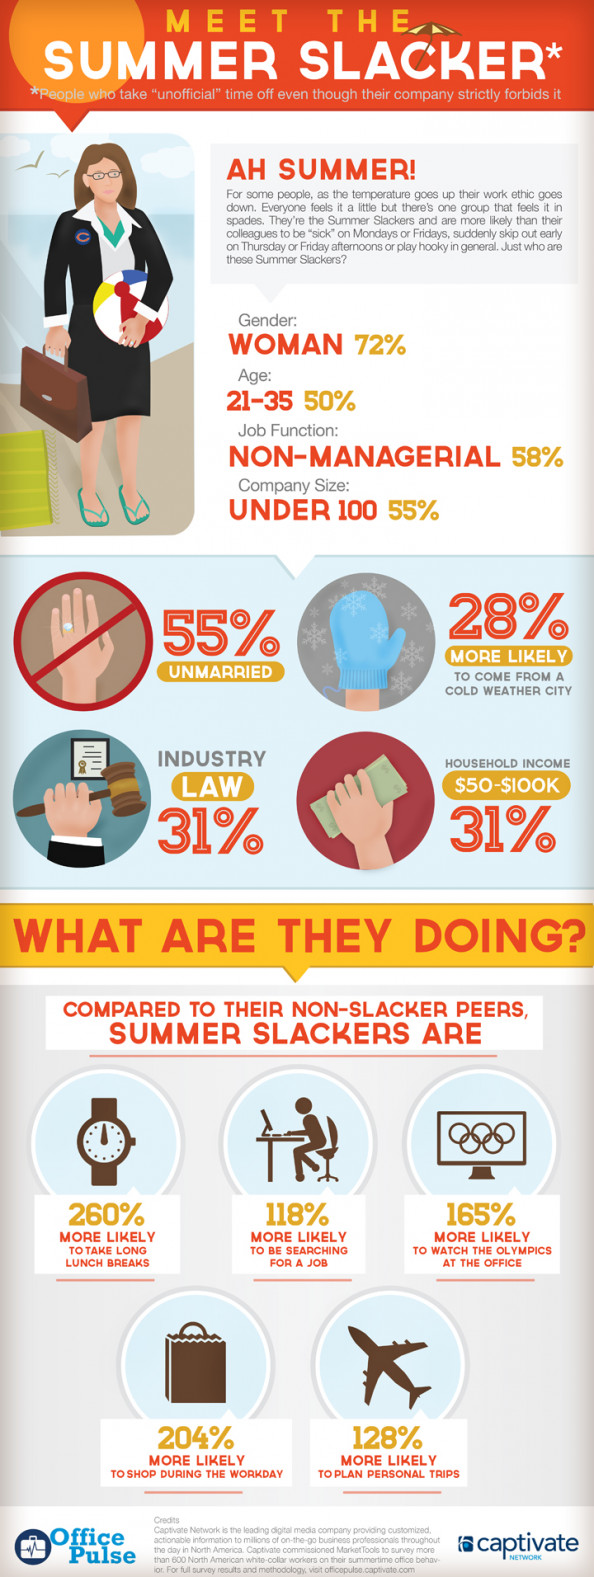 The Summer Slacker Infographic